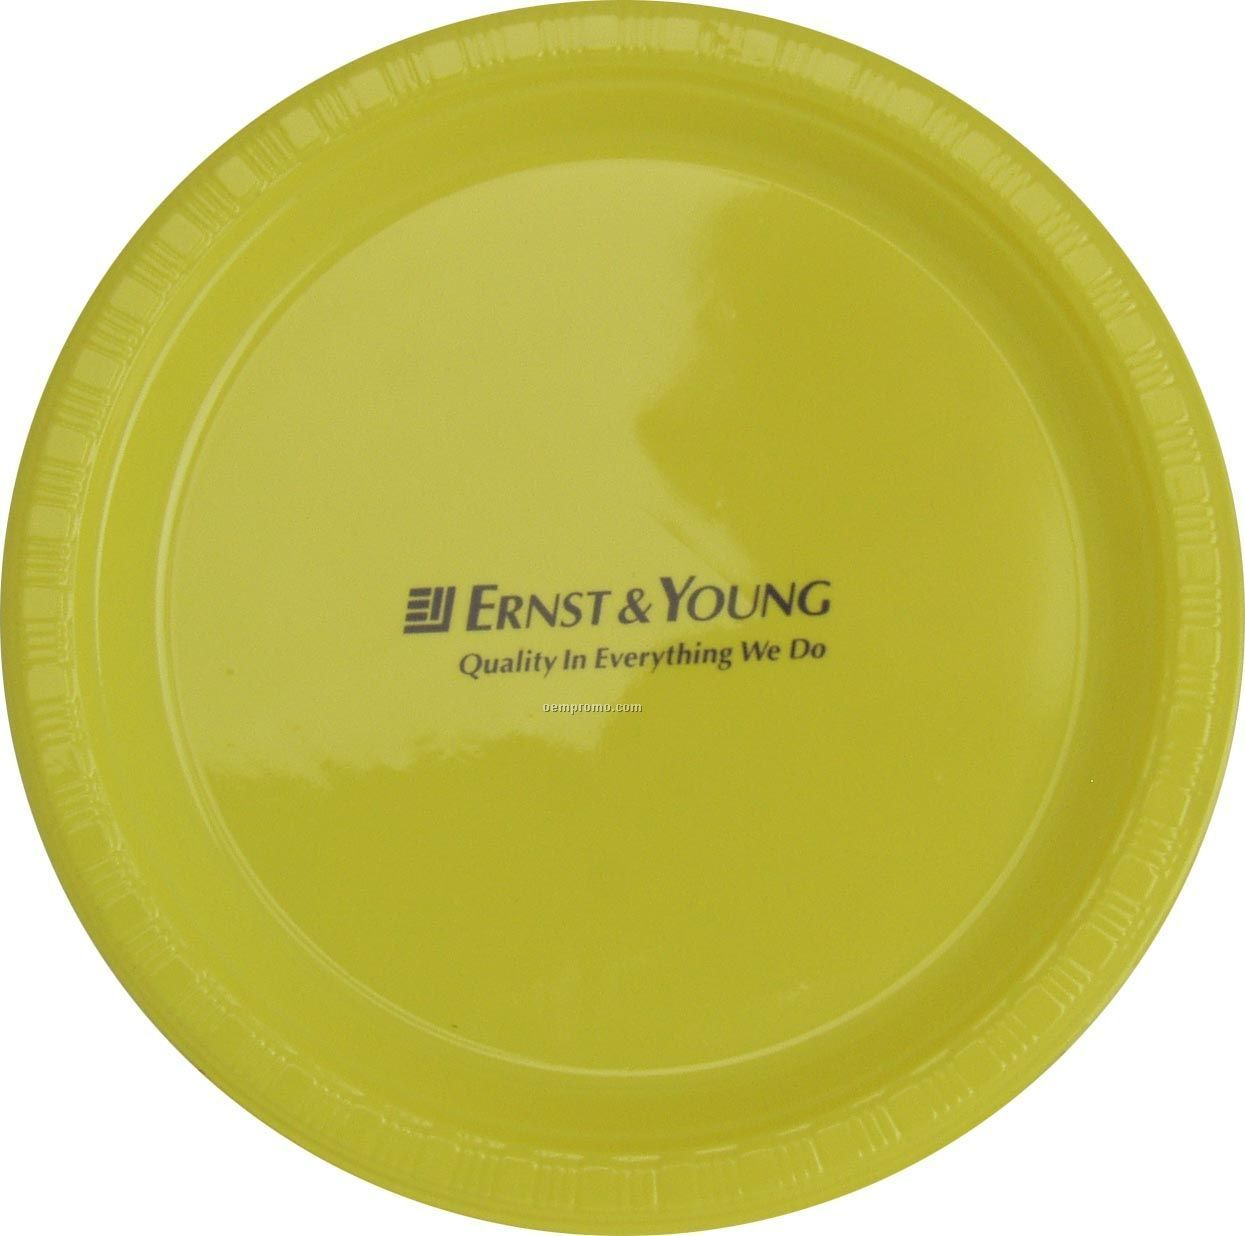 "Colorware 7"" Mimosa Yellow Plastic Plate"